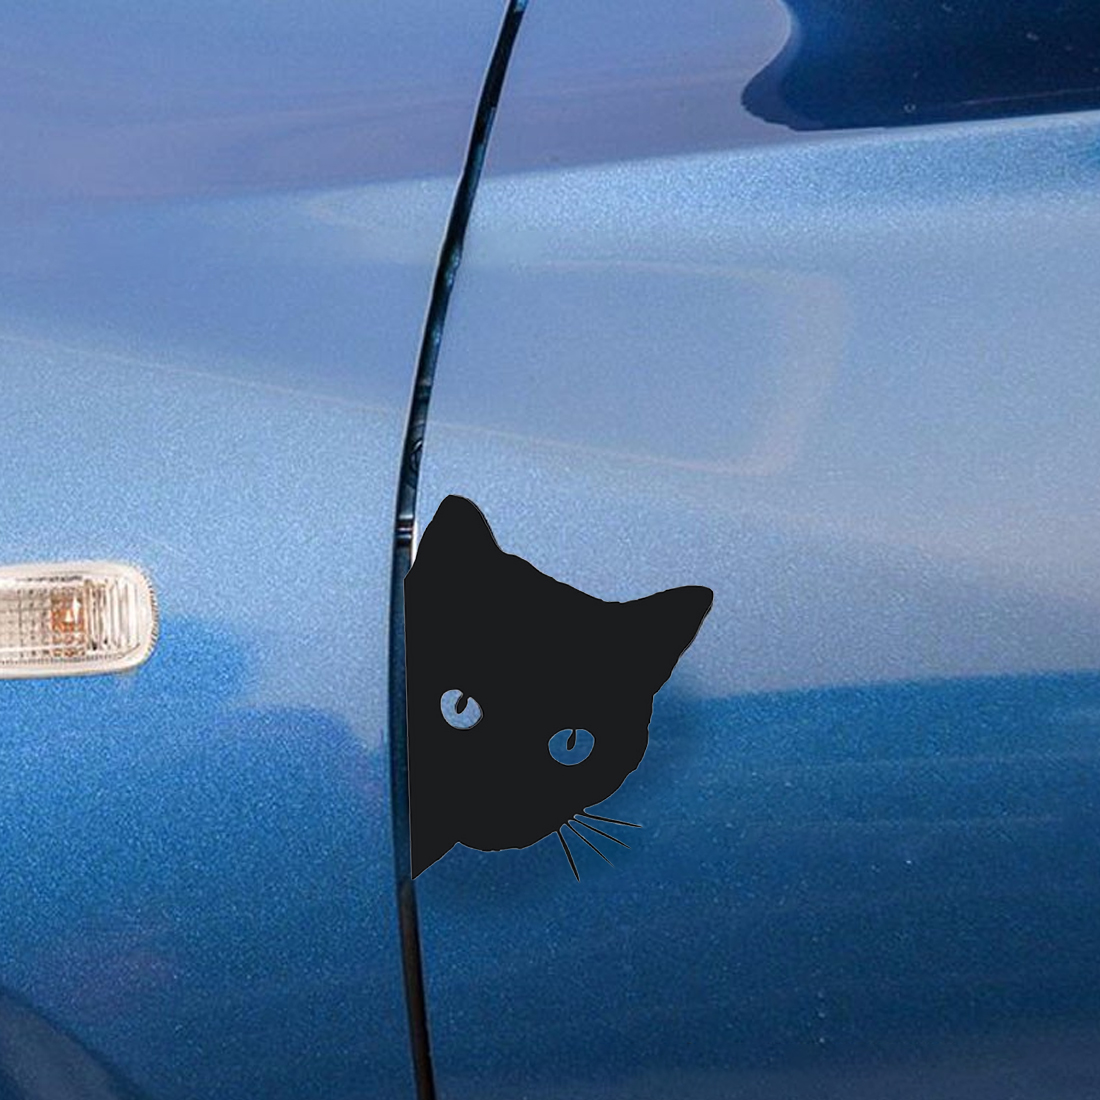 Dewtreetali 12*15CM CAT FACE PEERING Car Sticker Decals Pet Cat Motorcycle Decorative Stickers Car Window Decals image